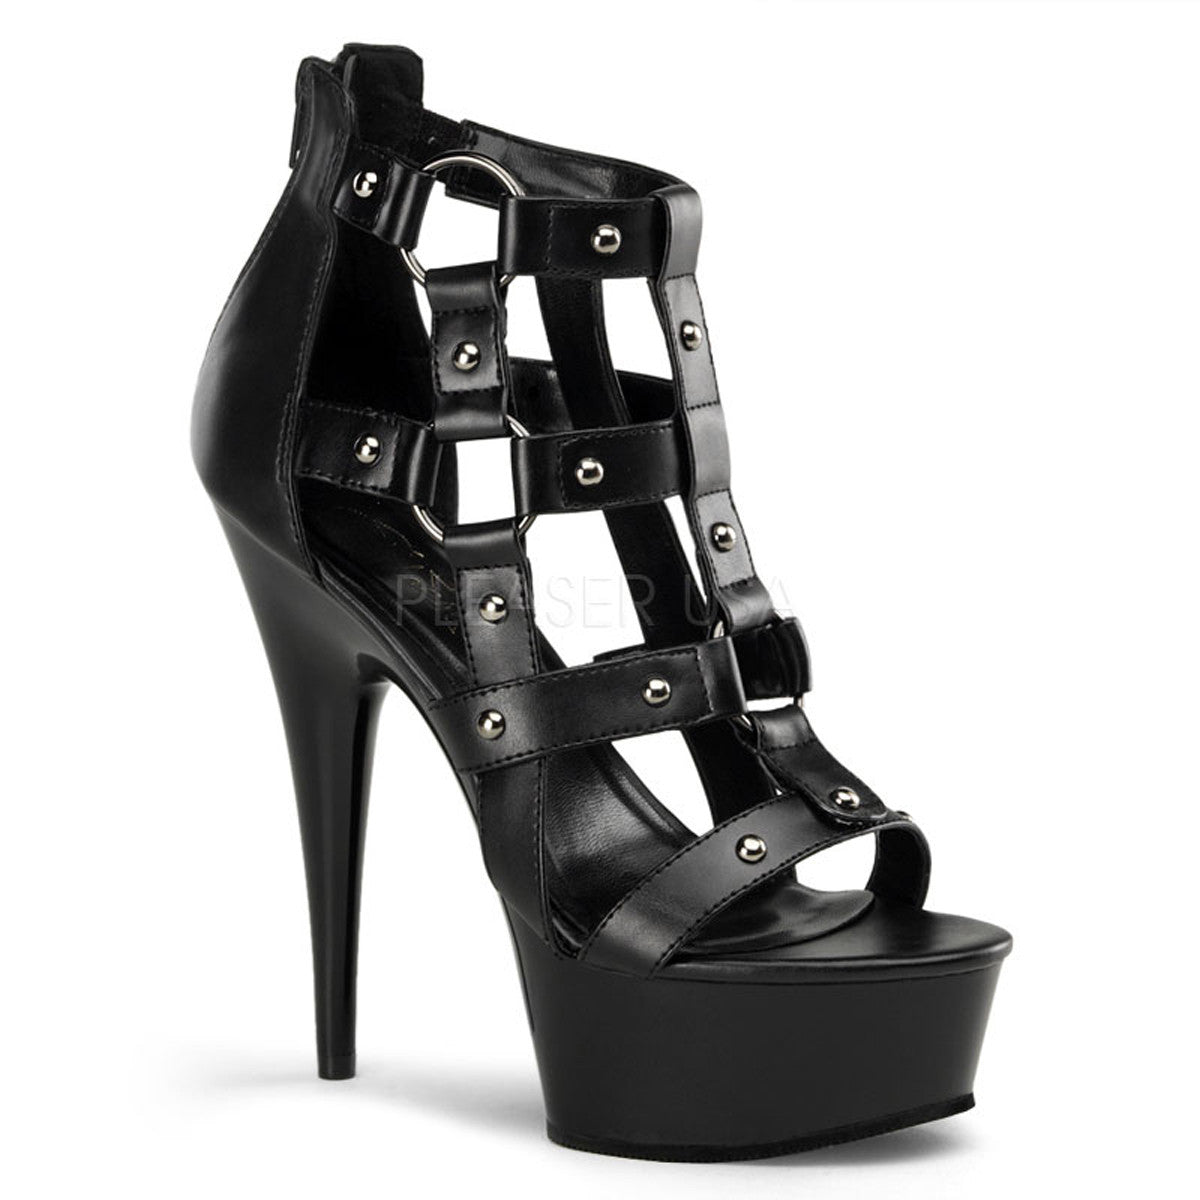 PLEASER DELIGHT-682 Black Cage Sandals - Shoecup.com